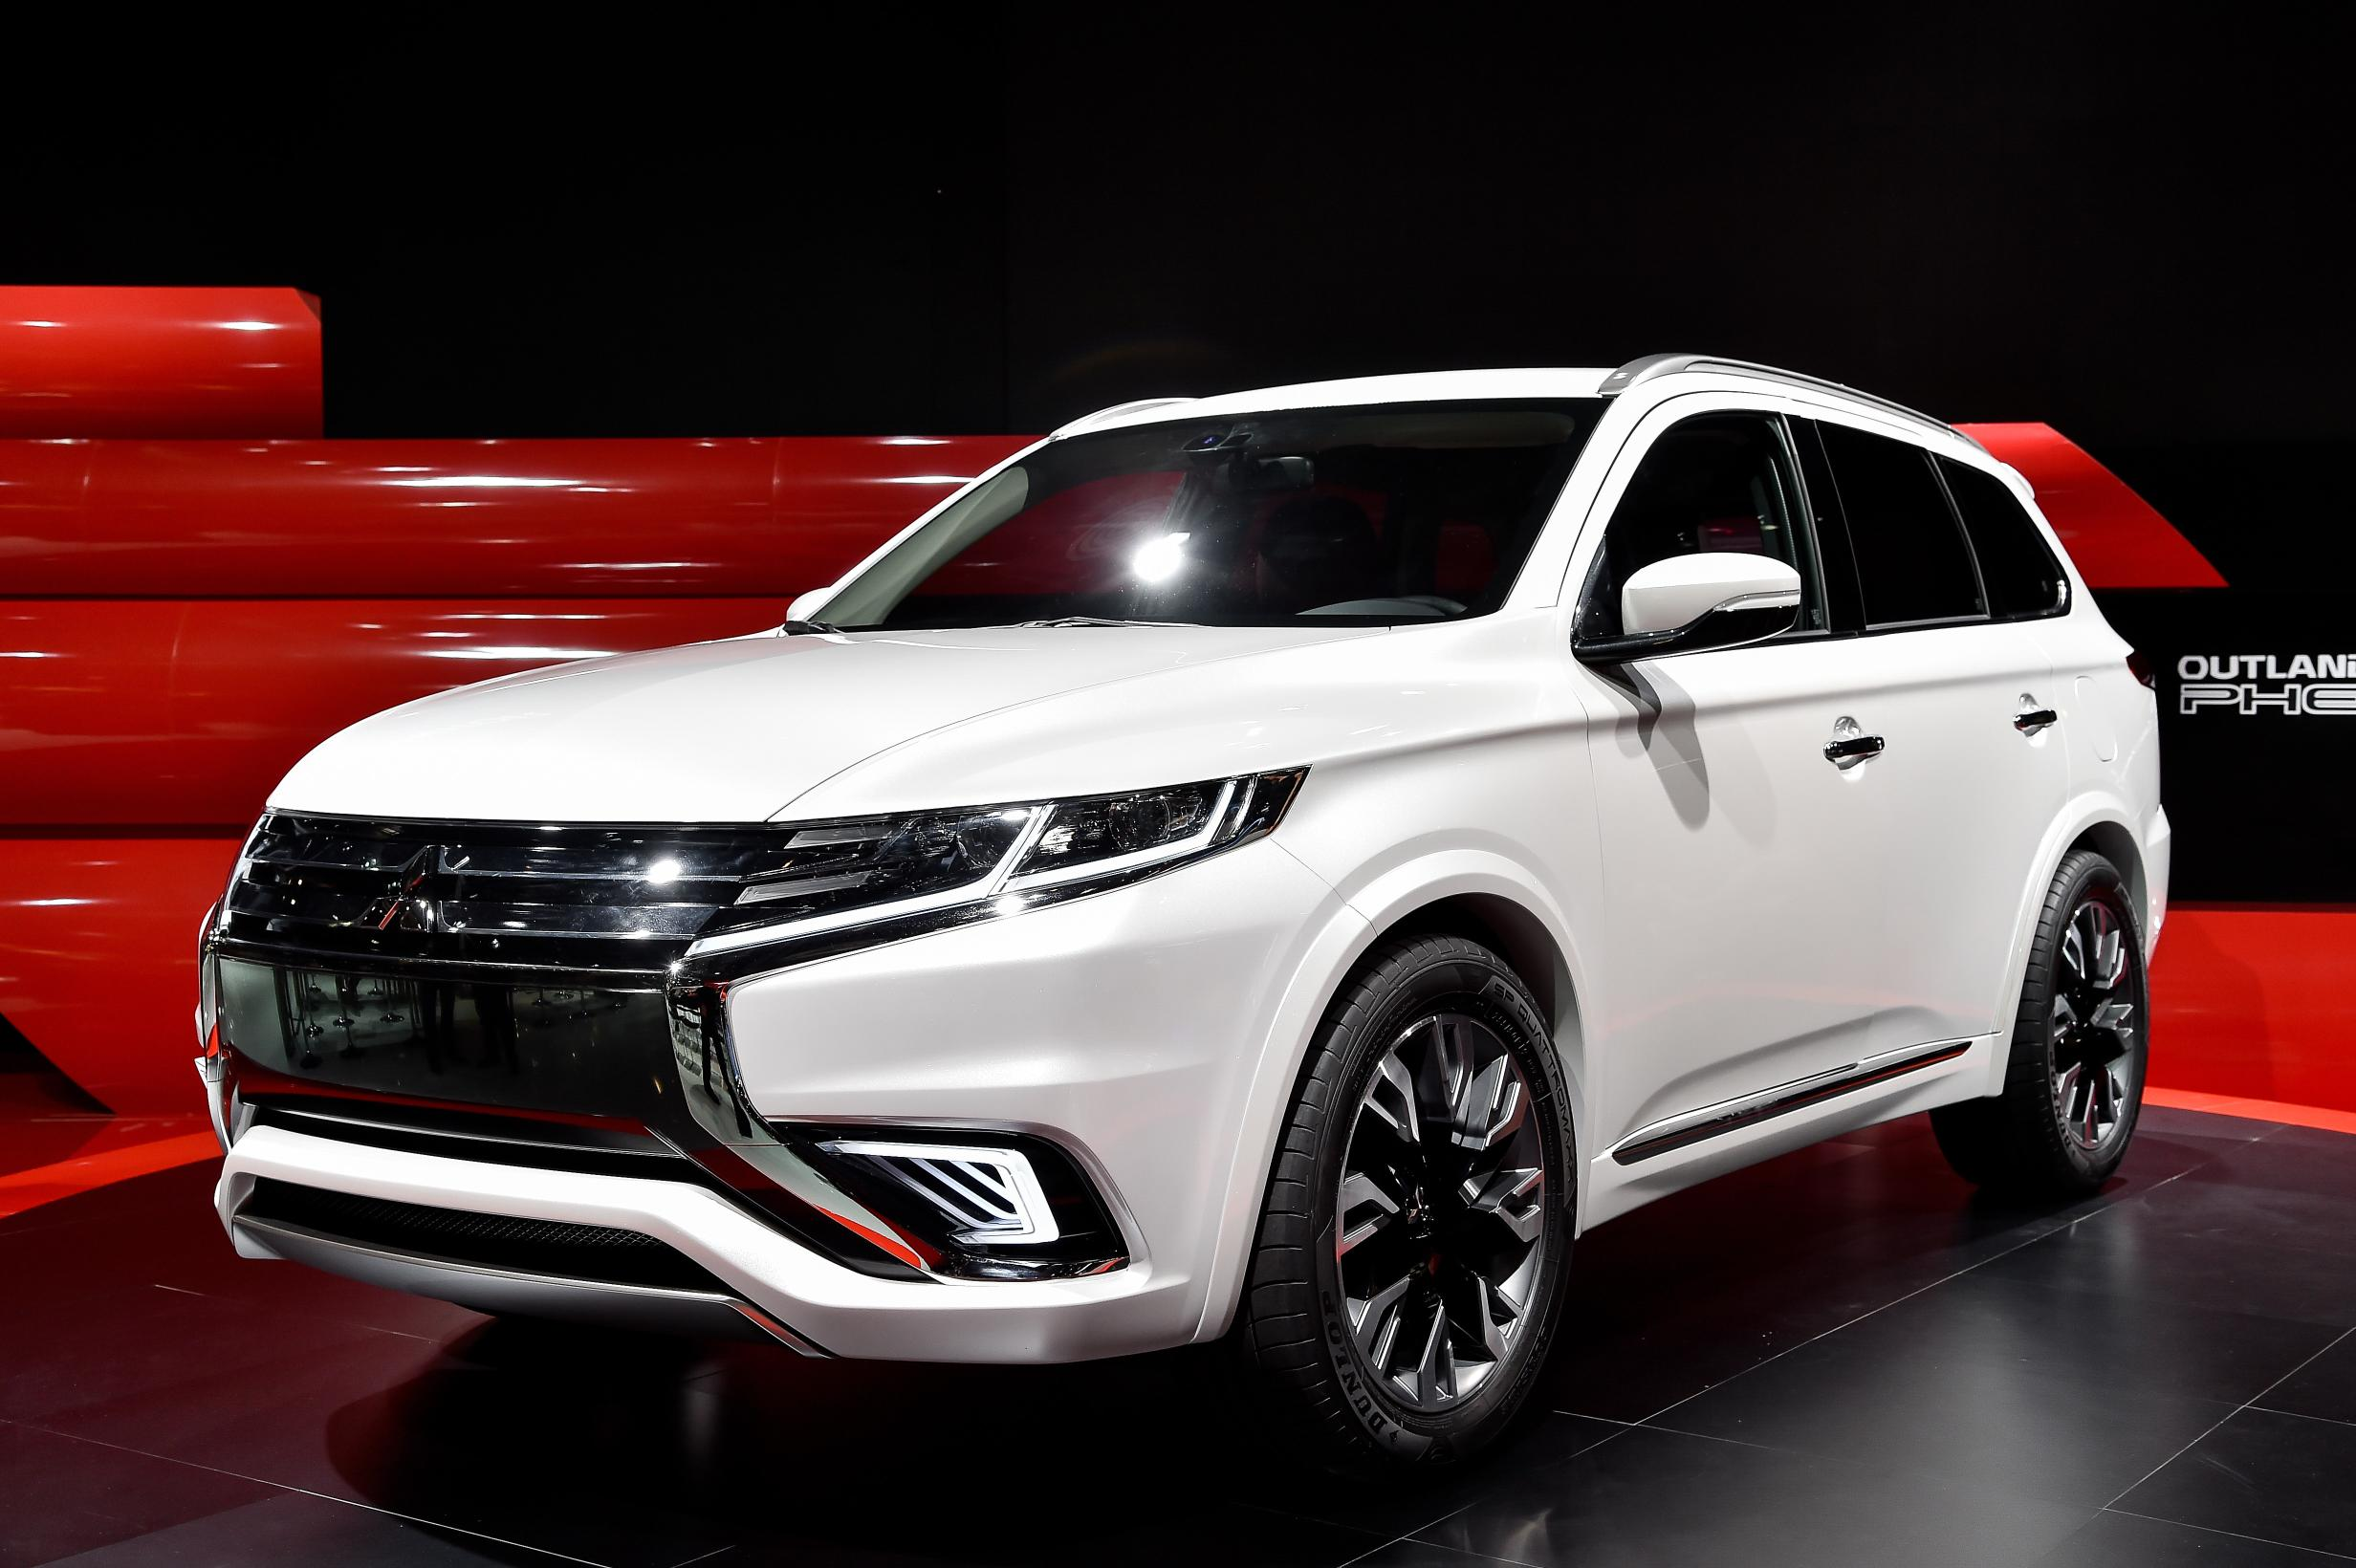 h sport outlander for recalled endeavor windshield woes vehicles news affected mitsubishi wiper